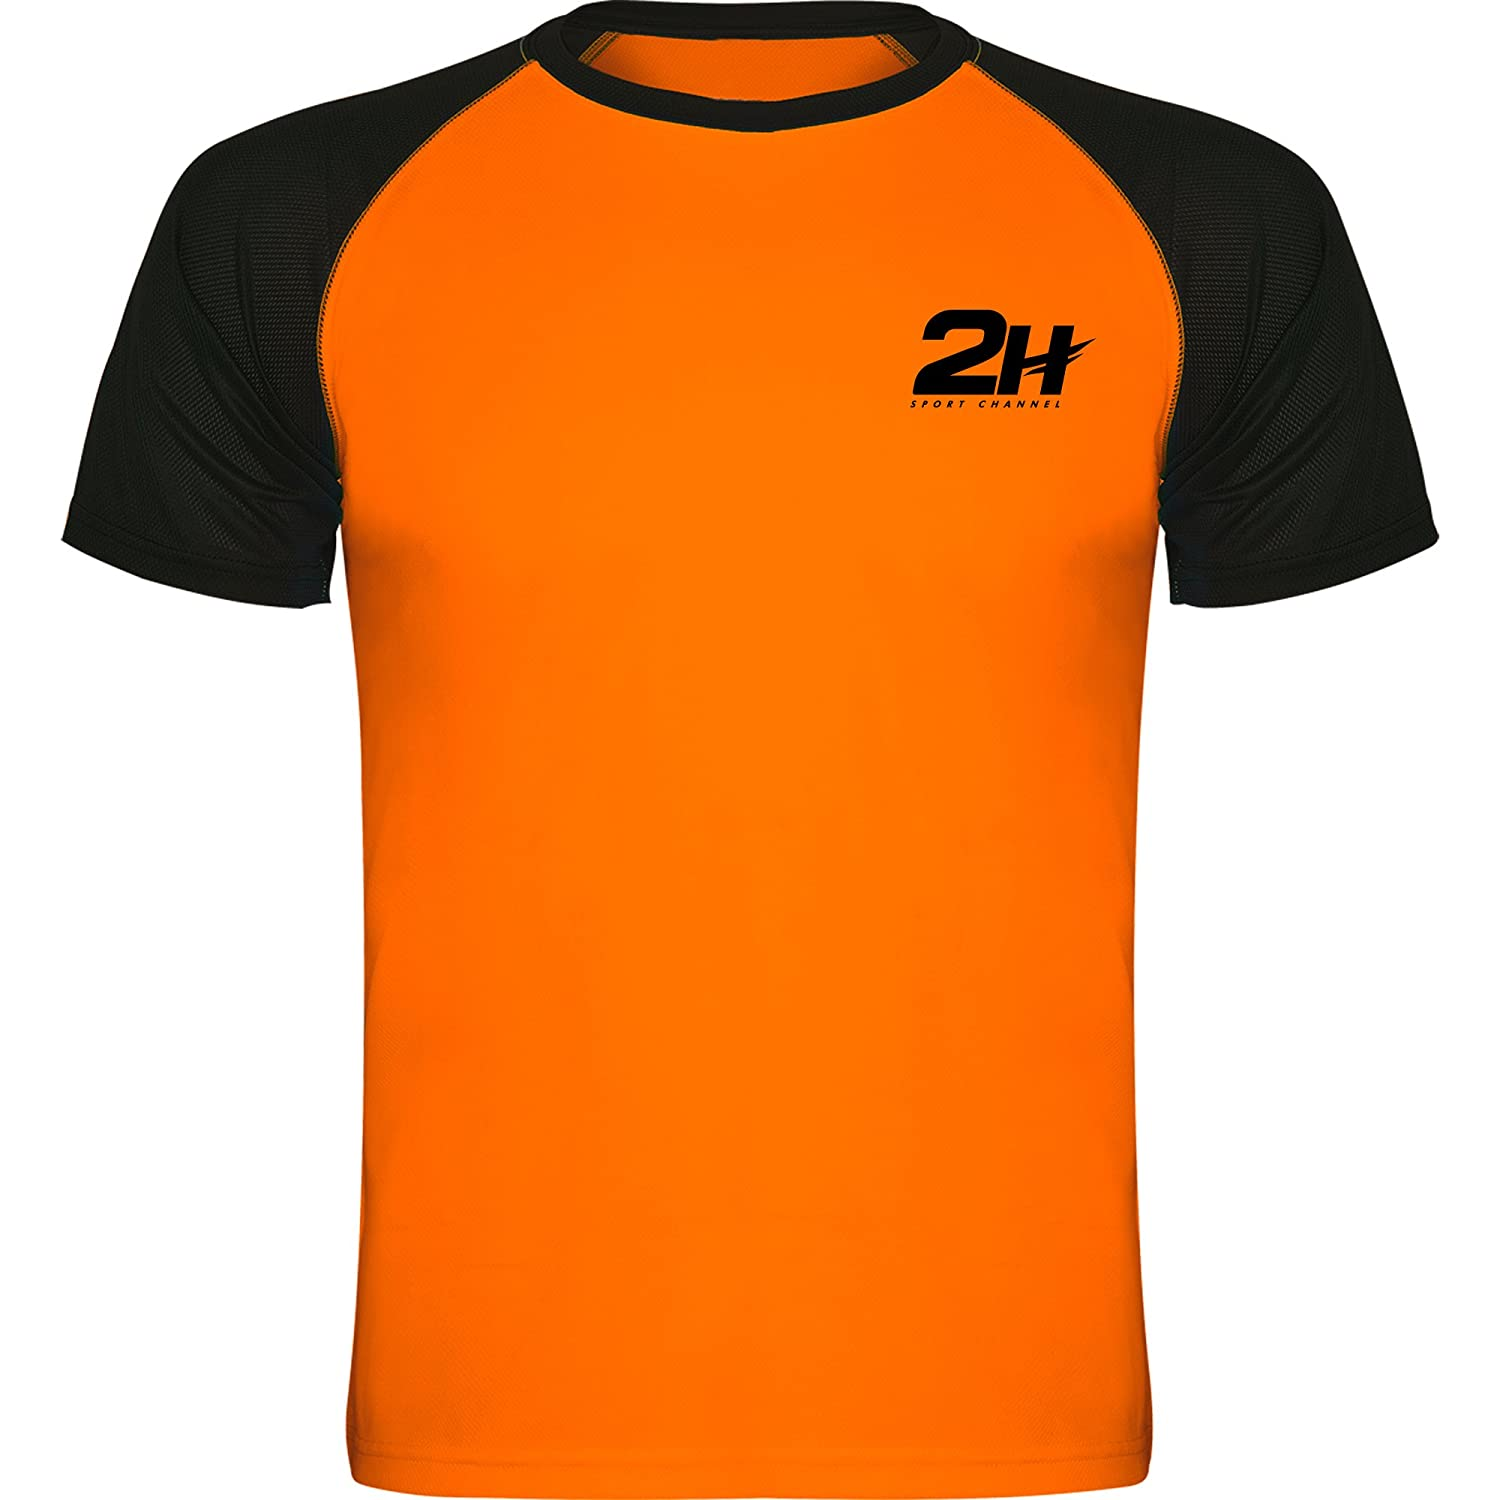 Camiseta técnica de pádel 2H Orange Fury, XL: Amazon.es: Deportes ...